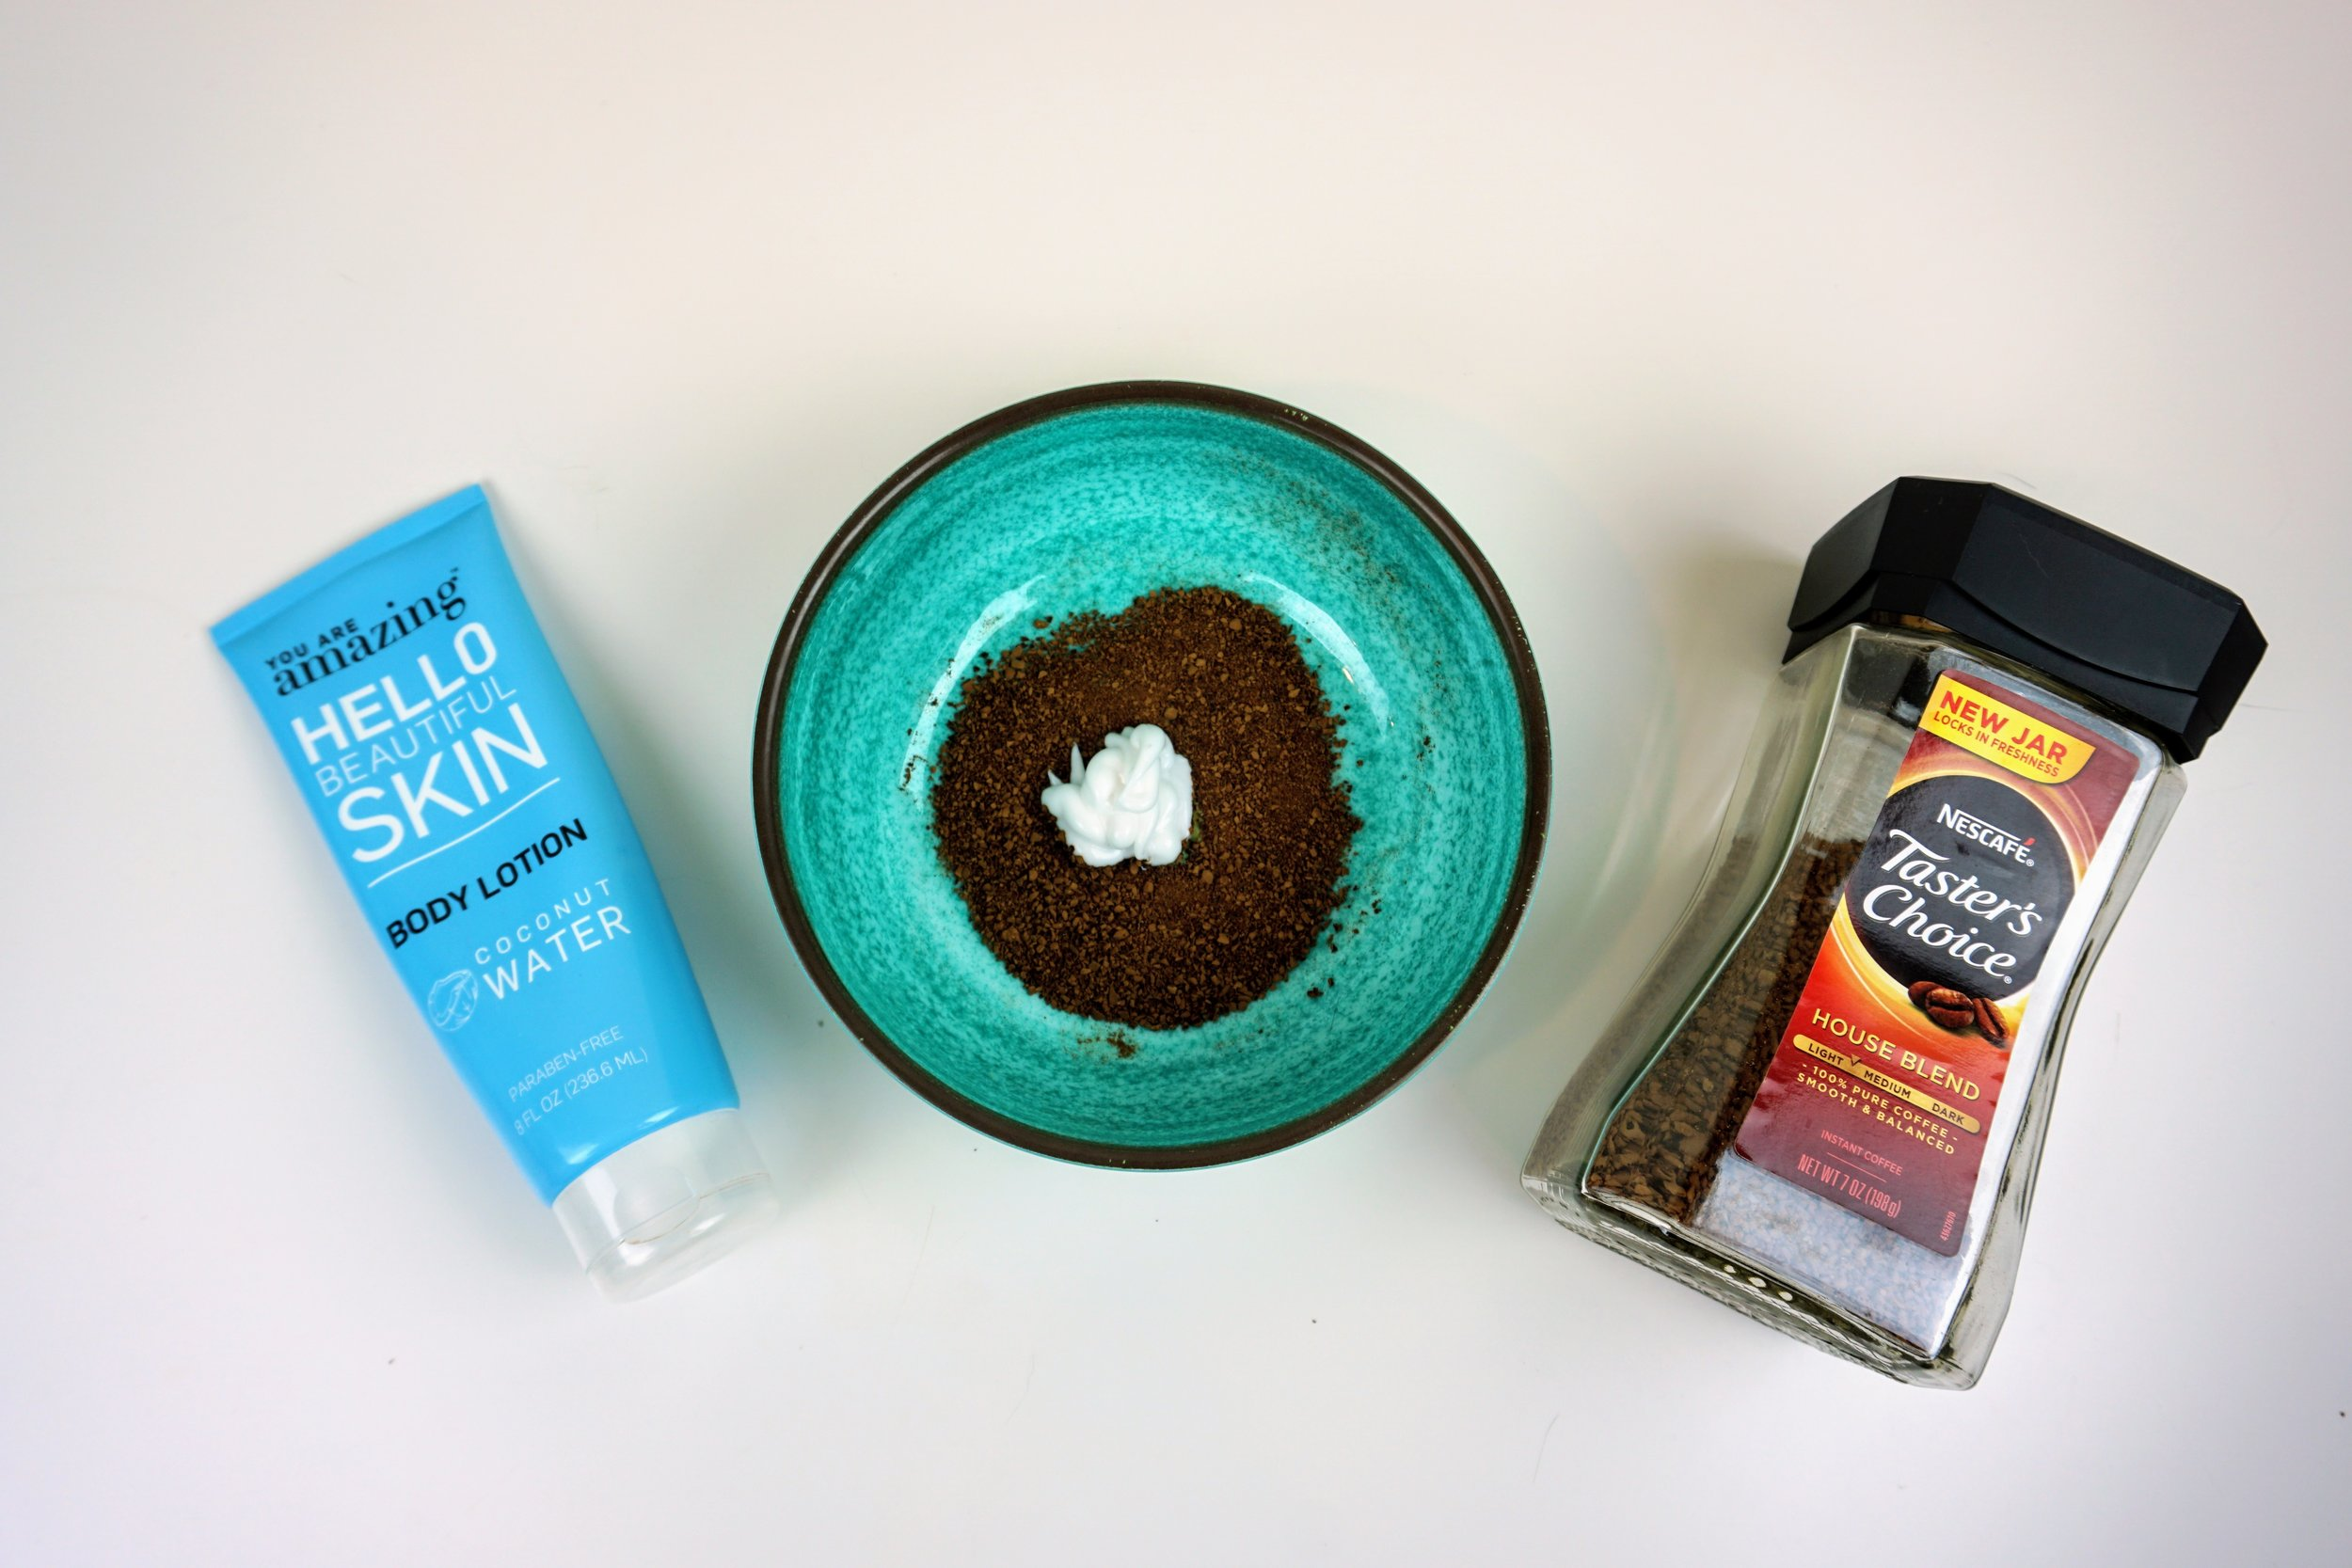 Lotion and coffee mixture to create a DIY tanner.